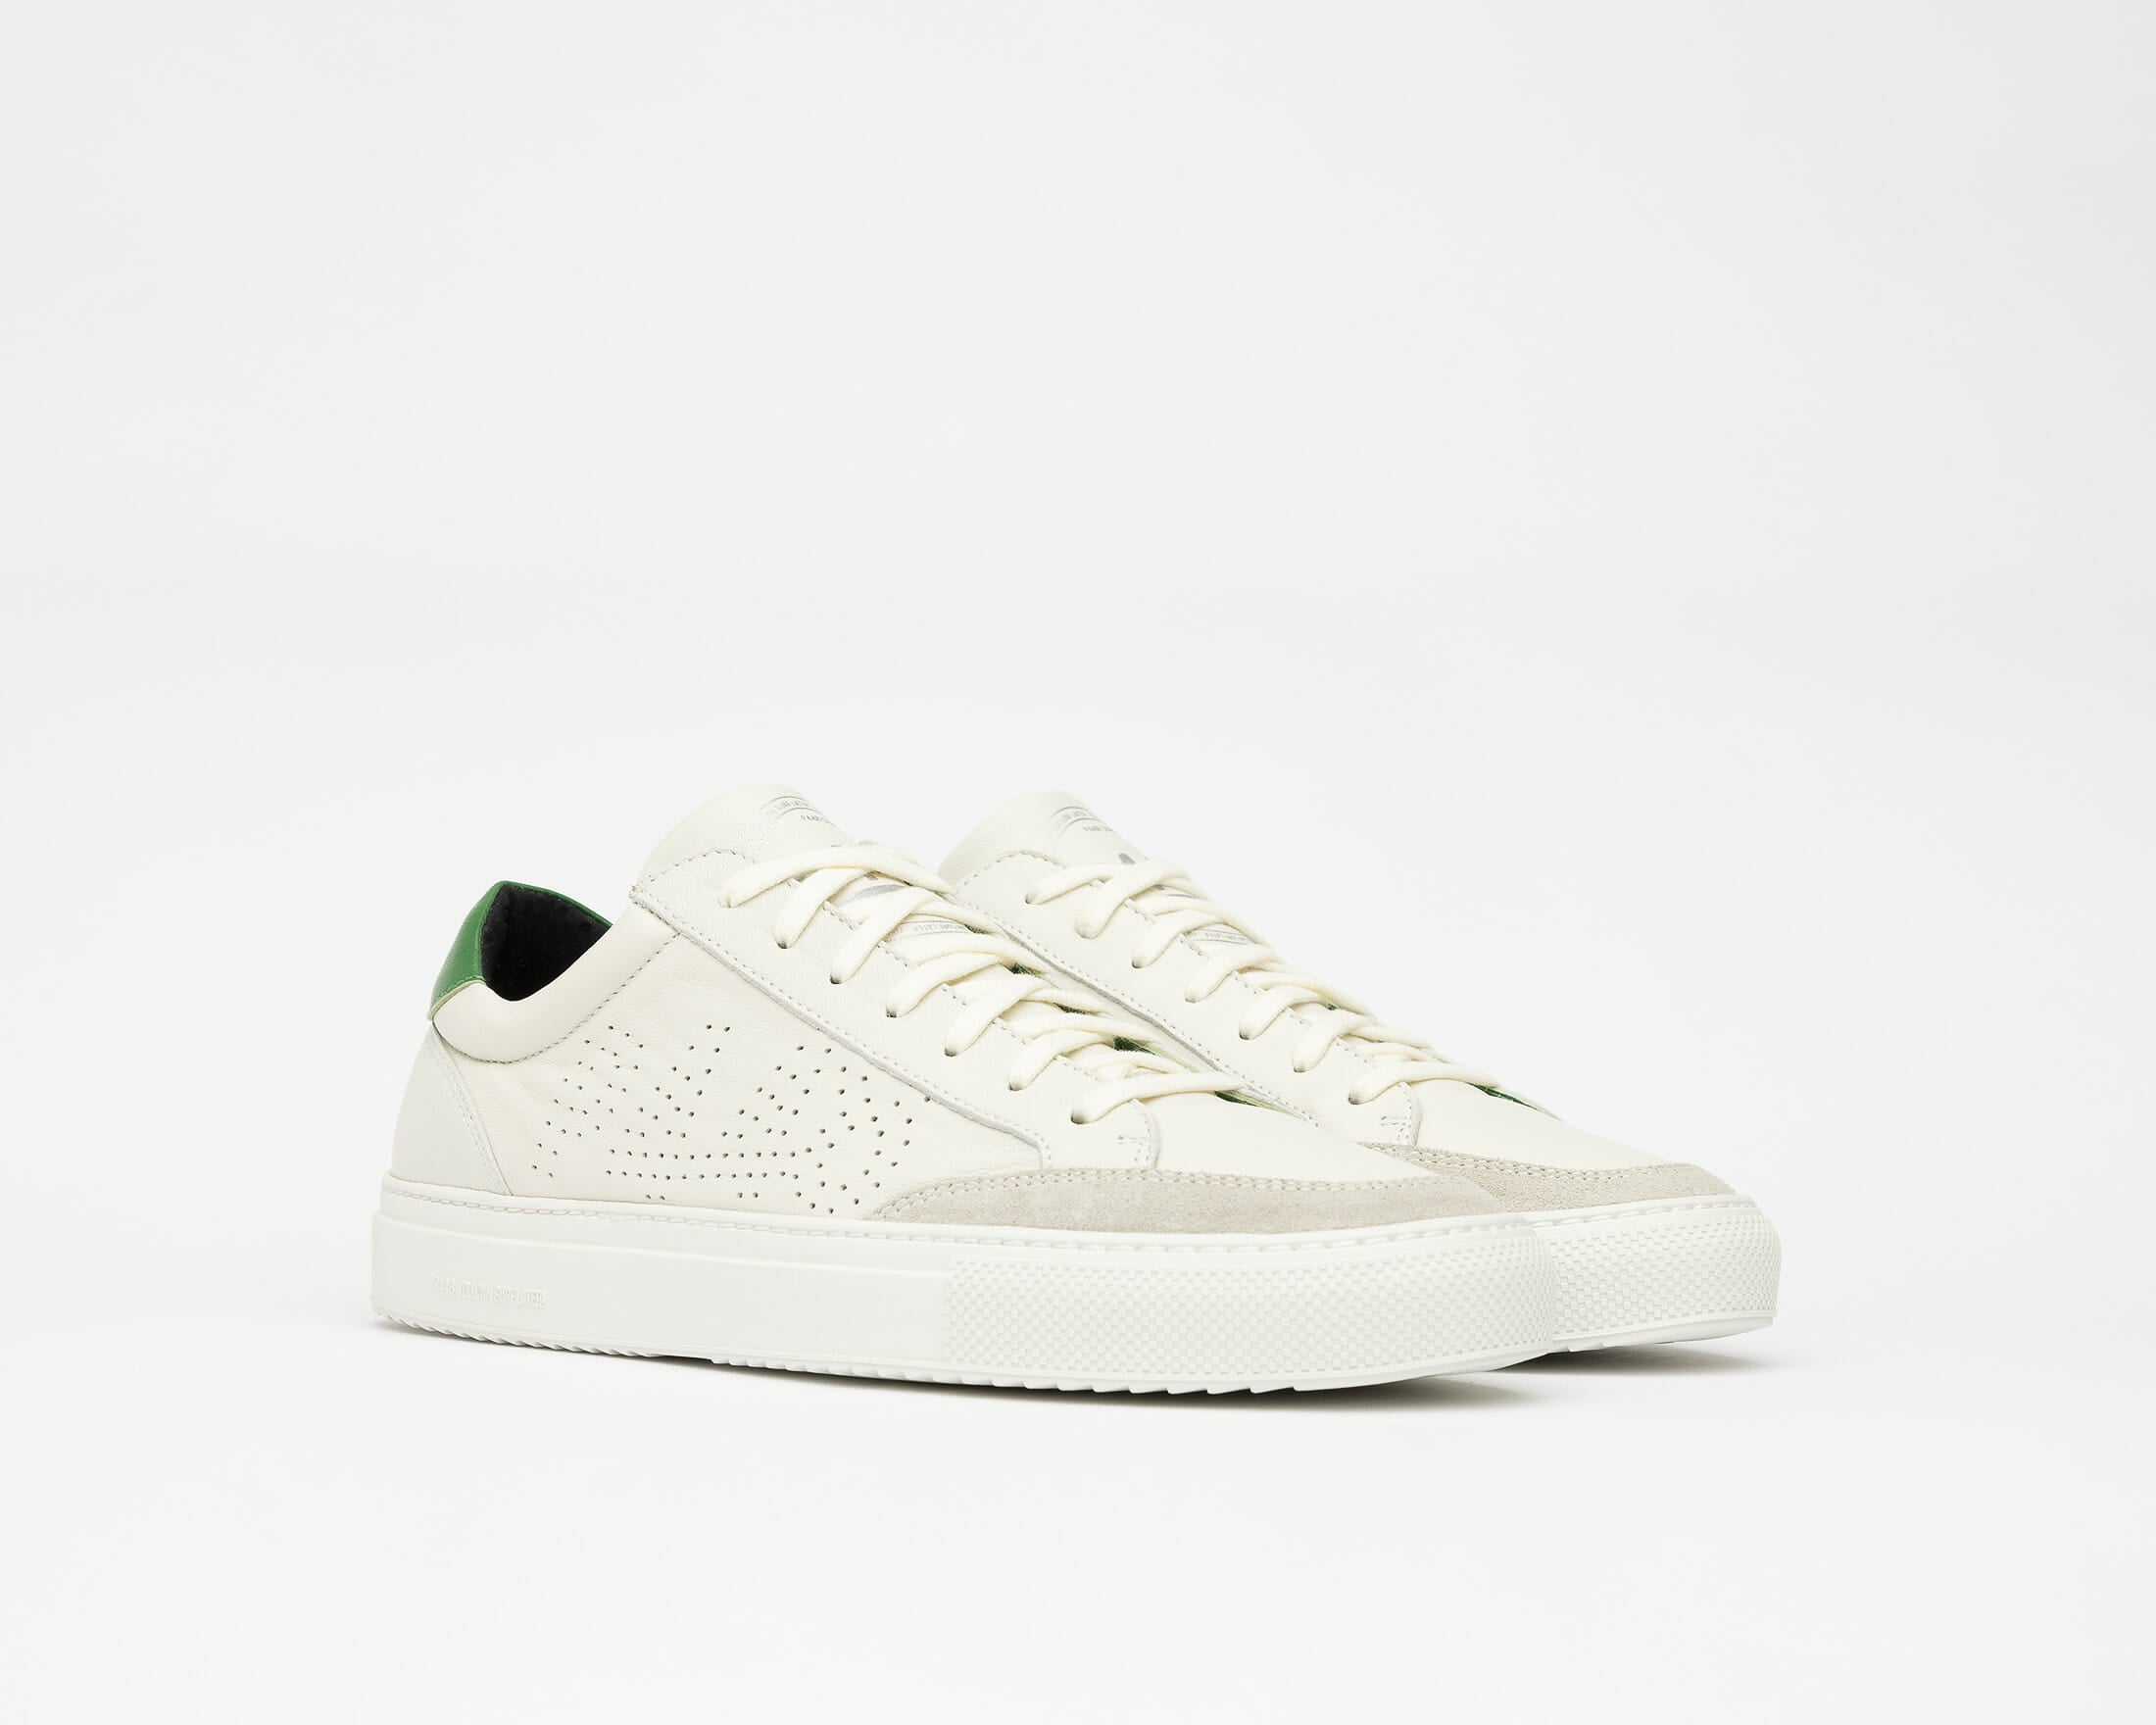 Soho Cream Green